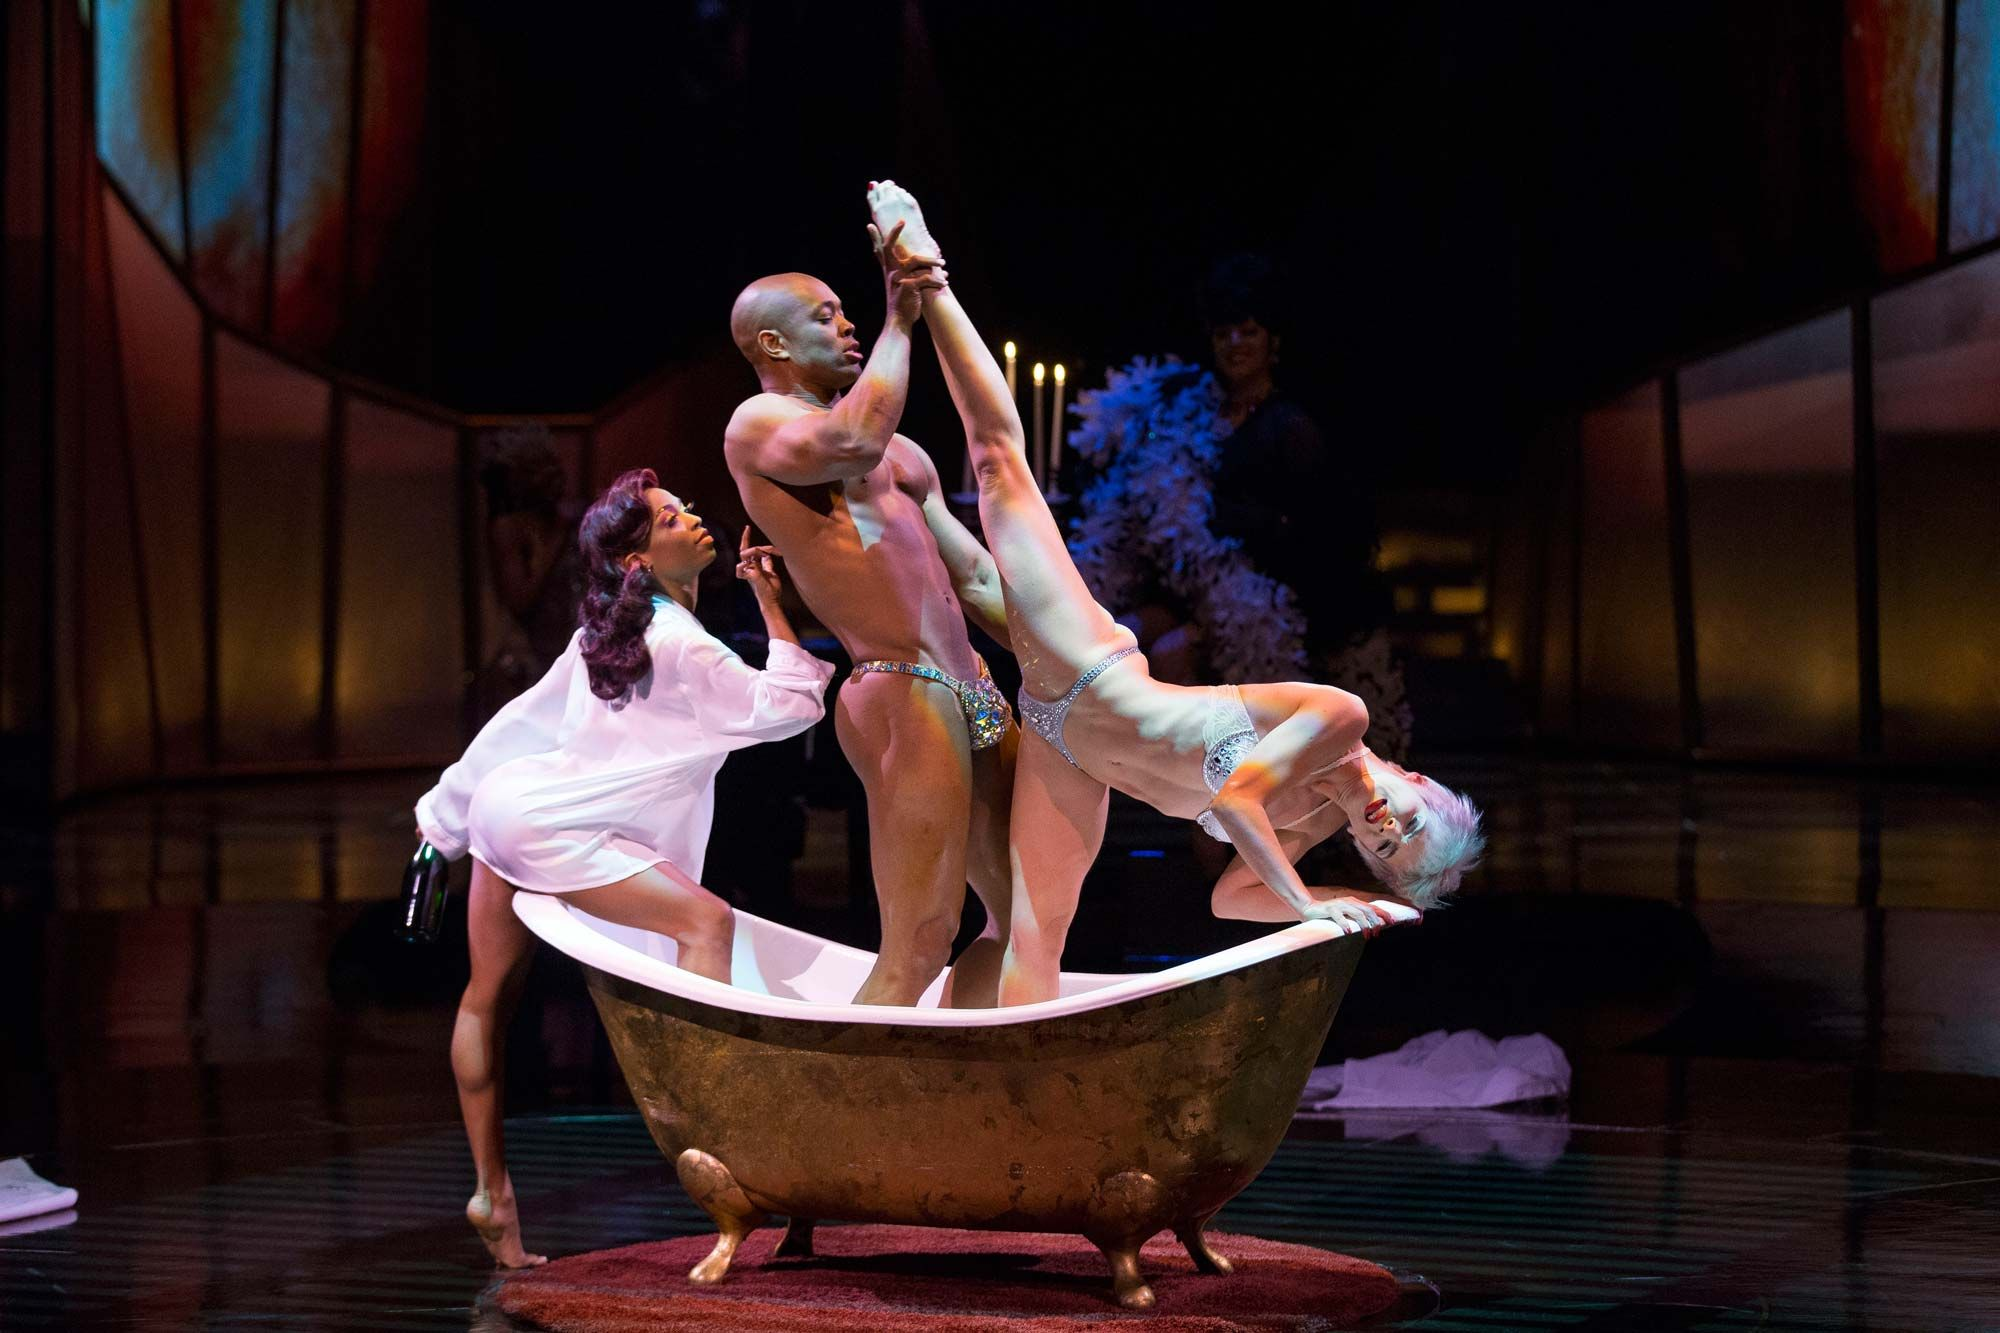 After zumanity met couple for sex